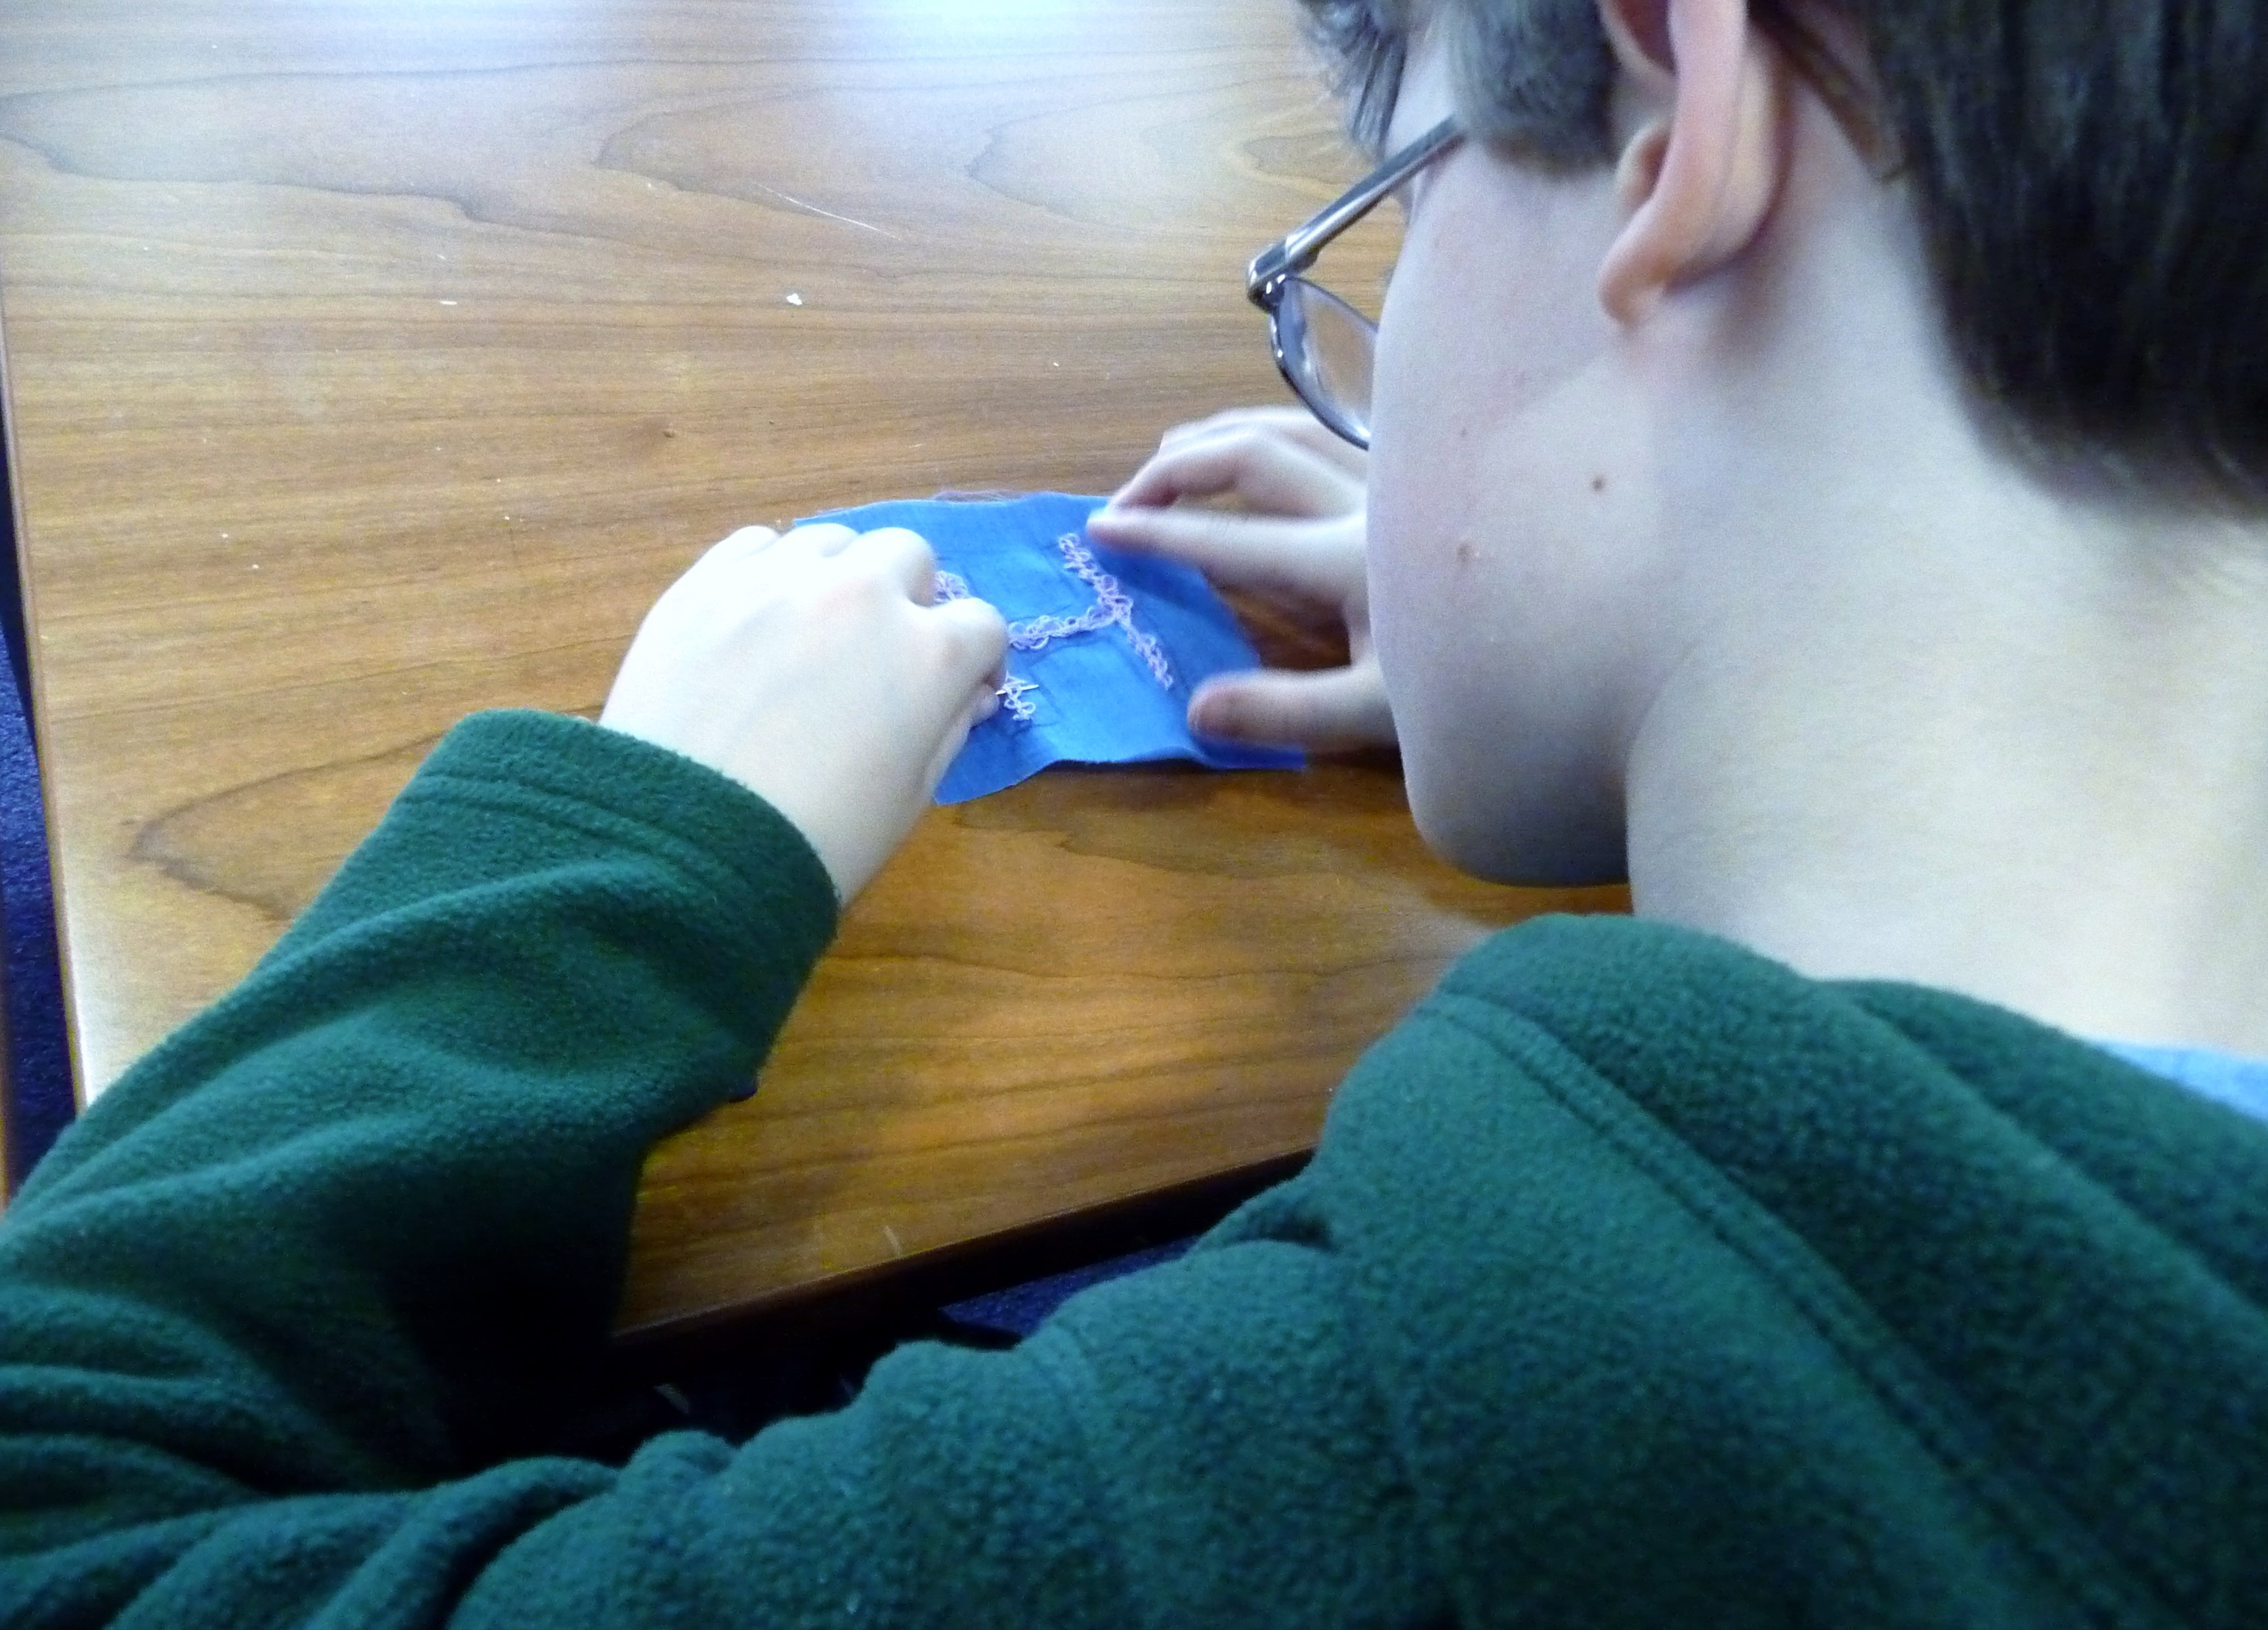 Fionn is concentrating on embellishing his letter with whip stitch